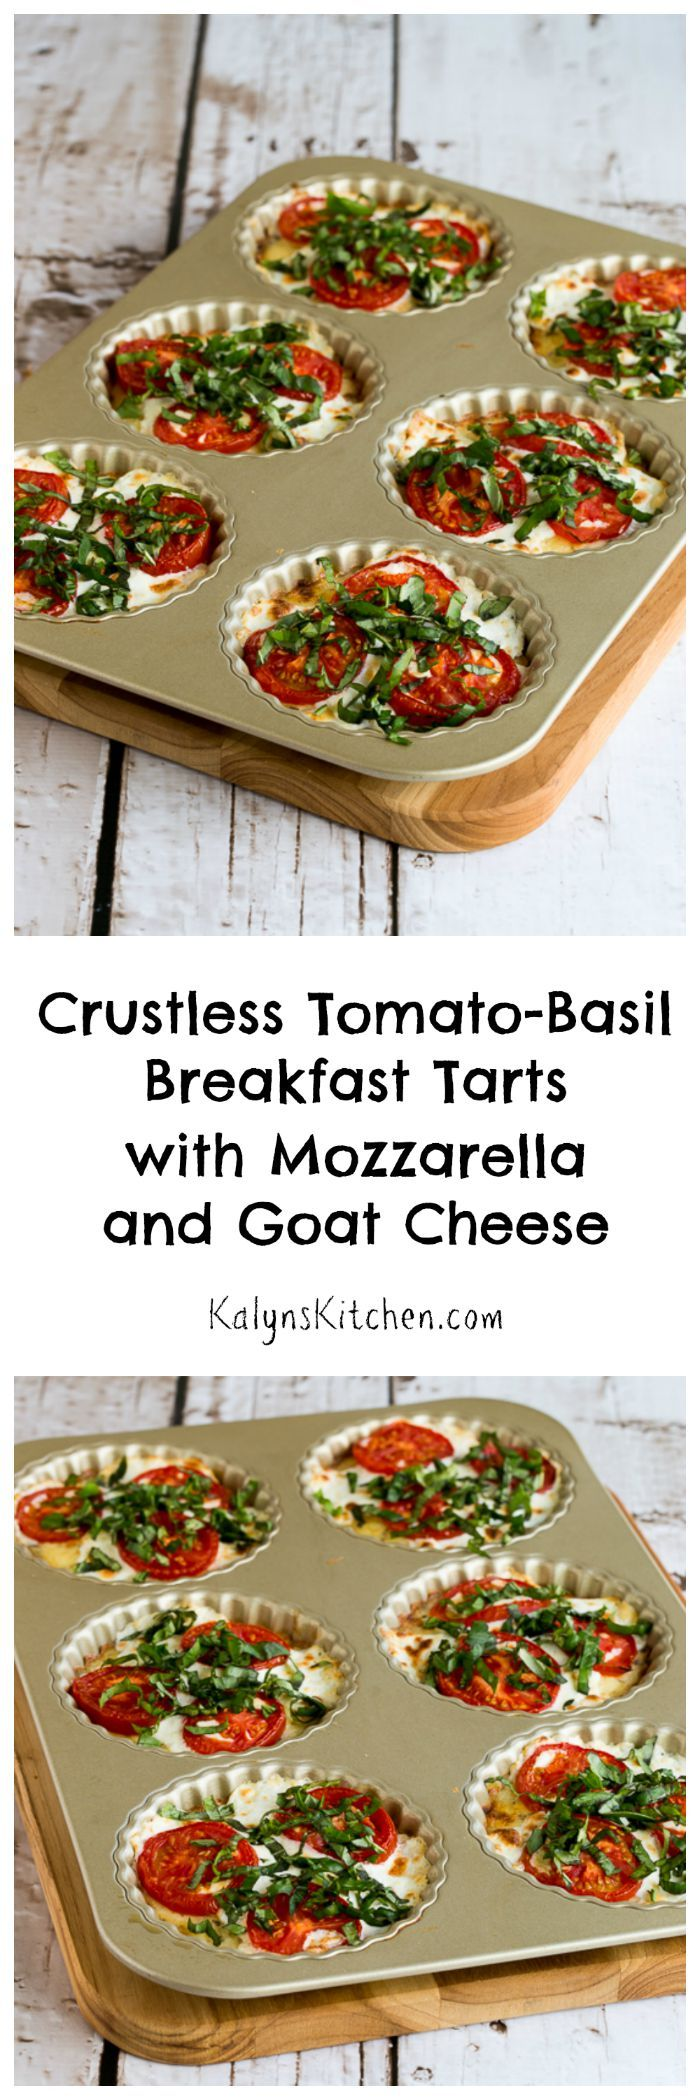 Crustless Tomato-Basil Breakfast Tarts with Mozzarella and Goat Cheese (Video)